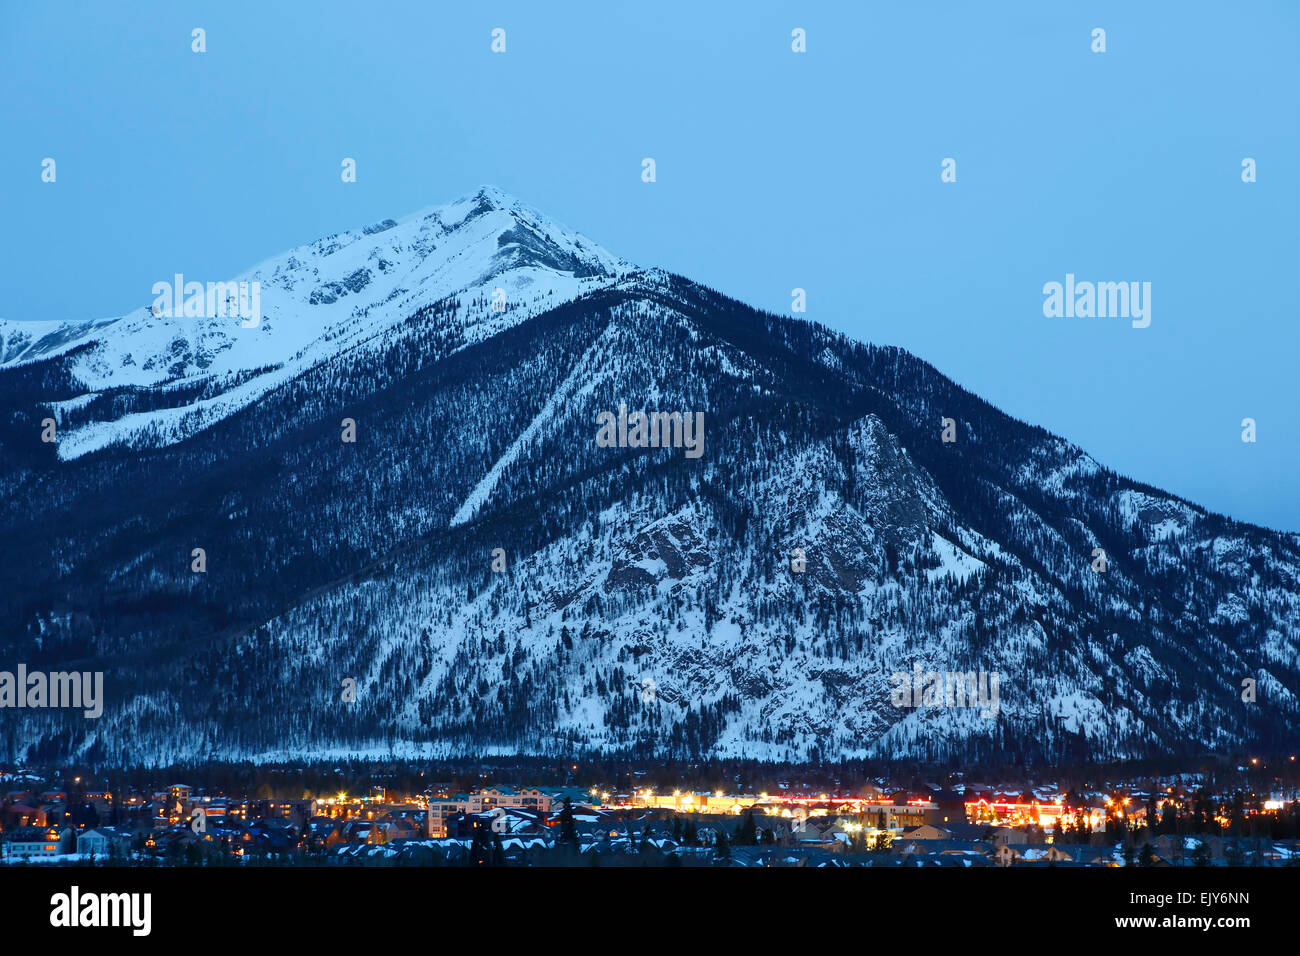 Ten Mile Peak (aka Peak 1) and town of Frisco, Colorado USA - Stock Image